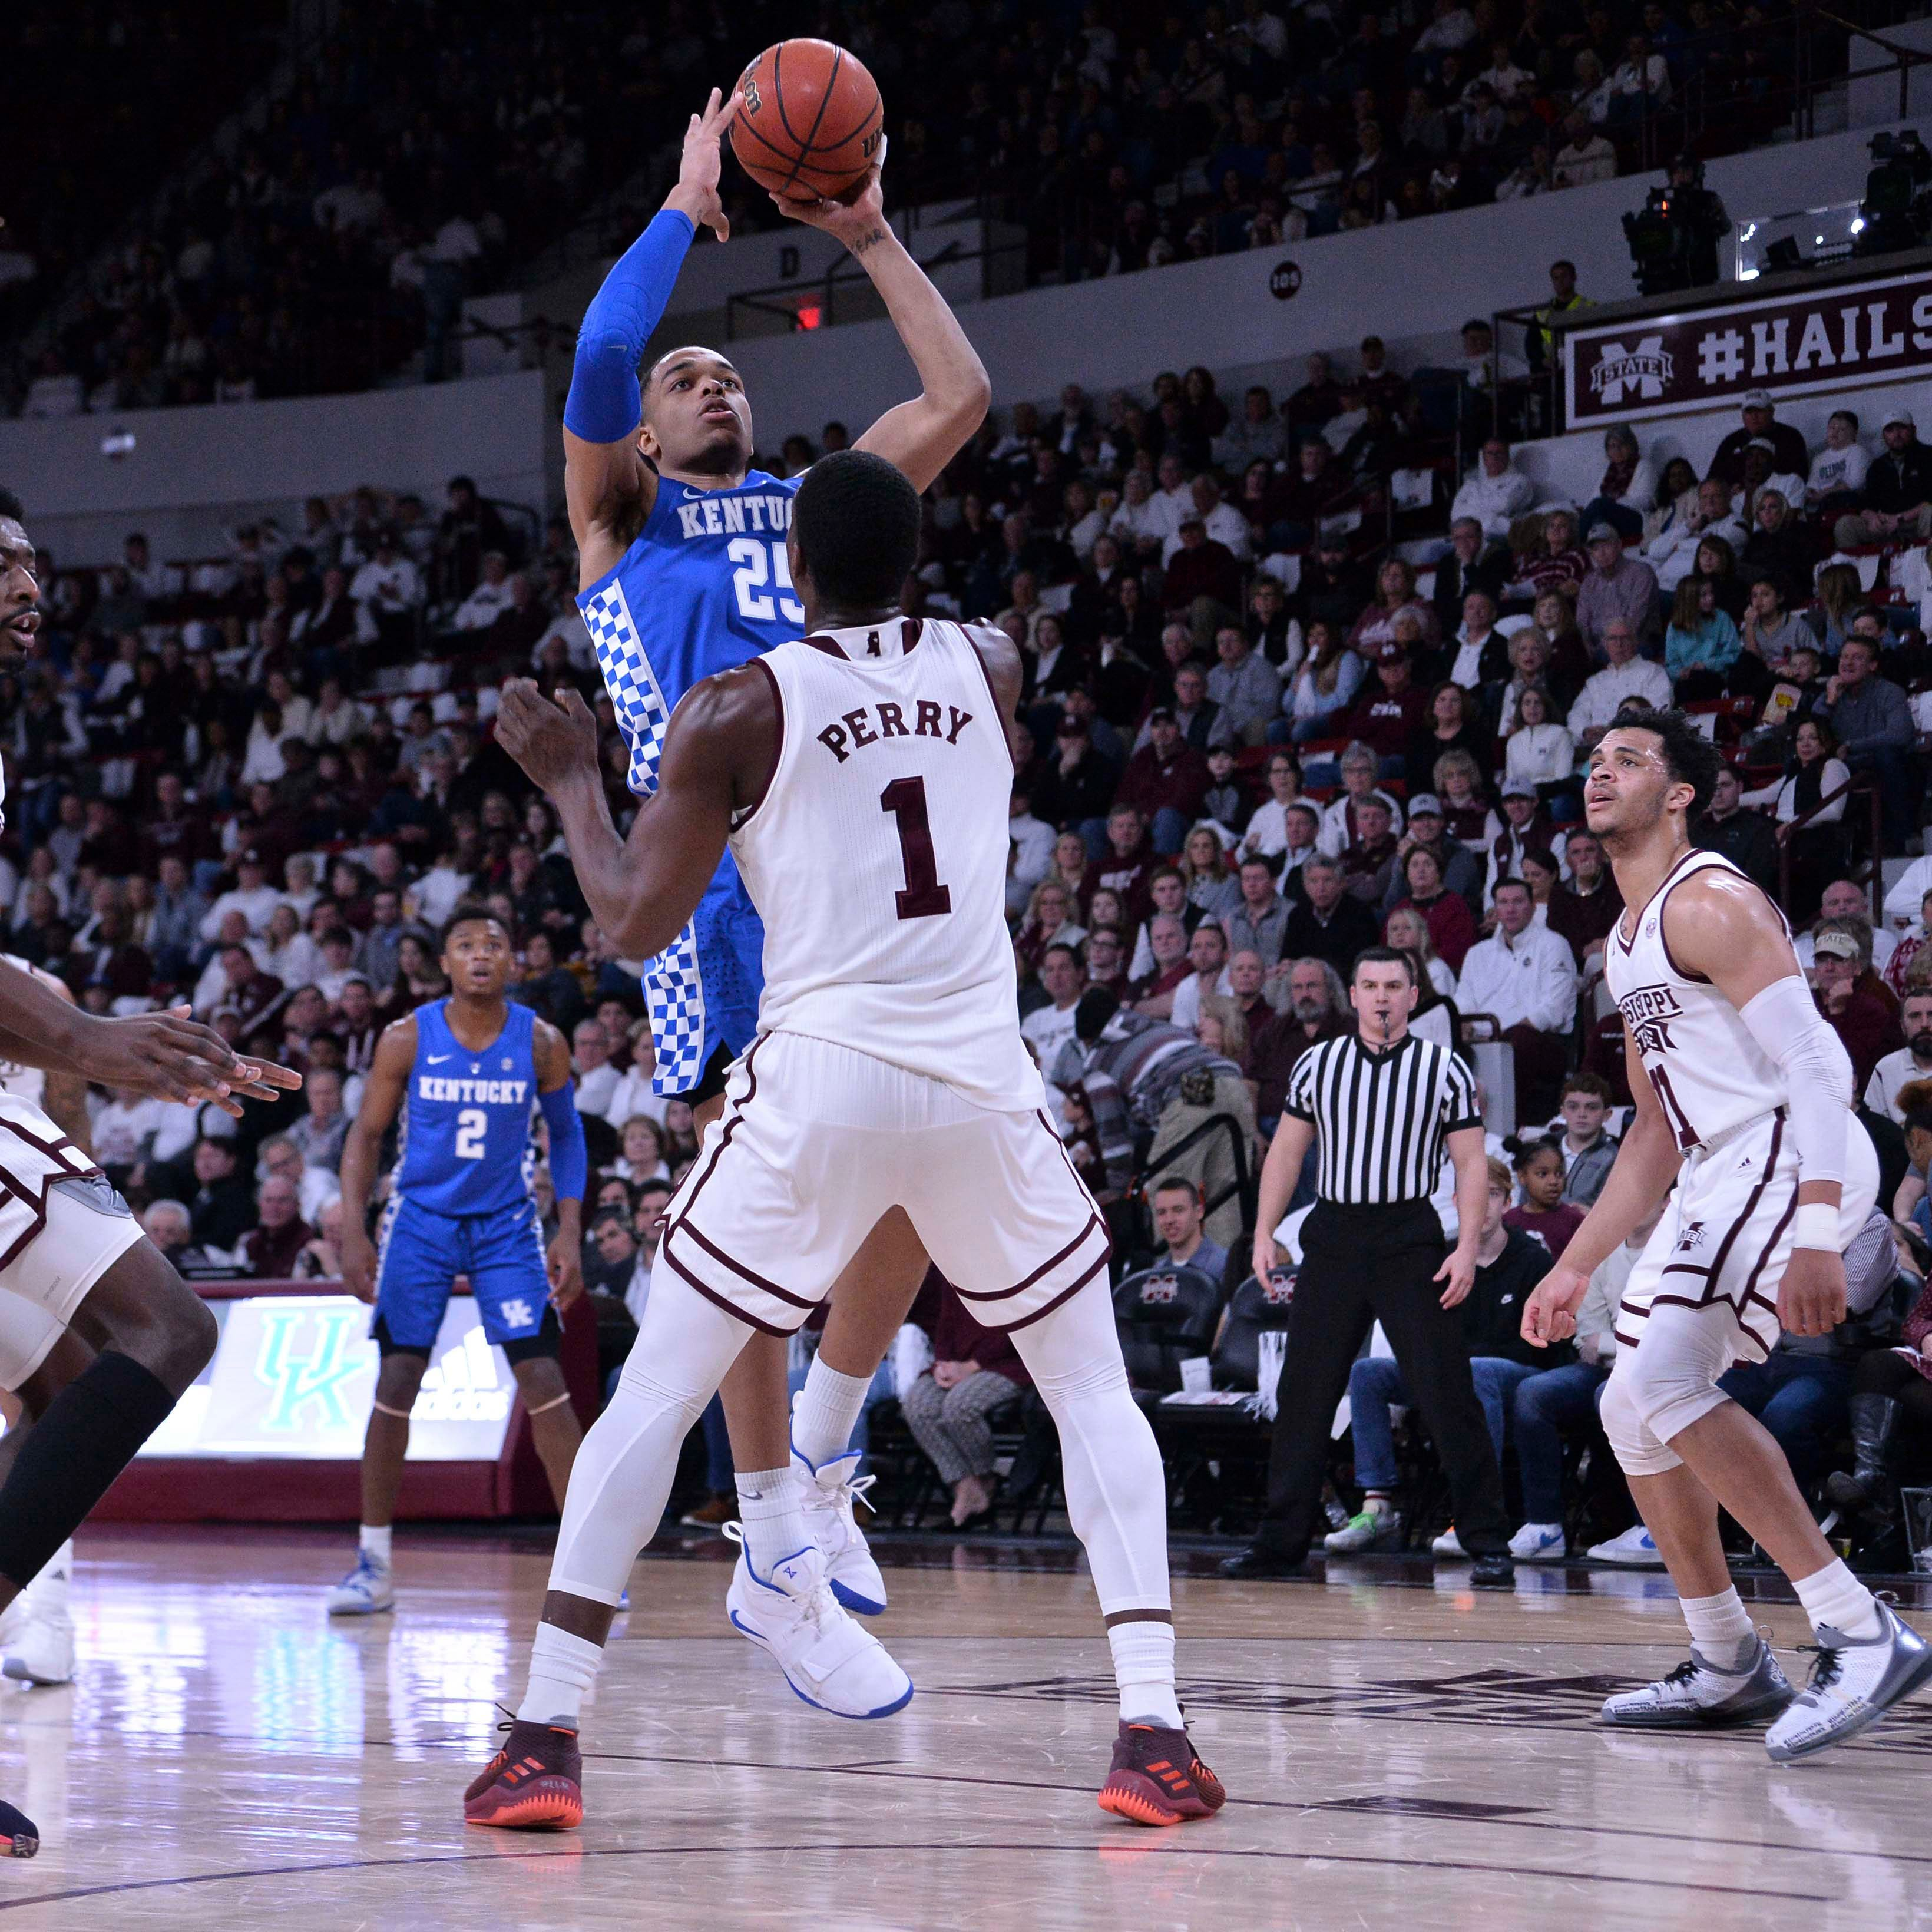 Too many 'what if' moments for Mississippi State in loss to Kentucky